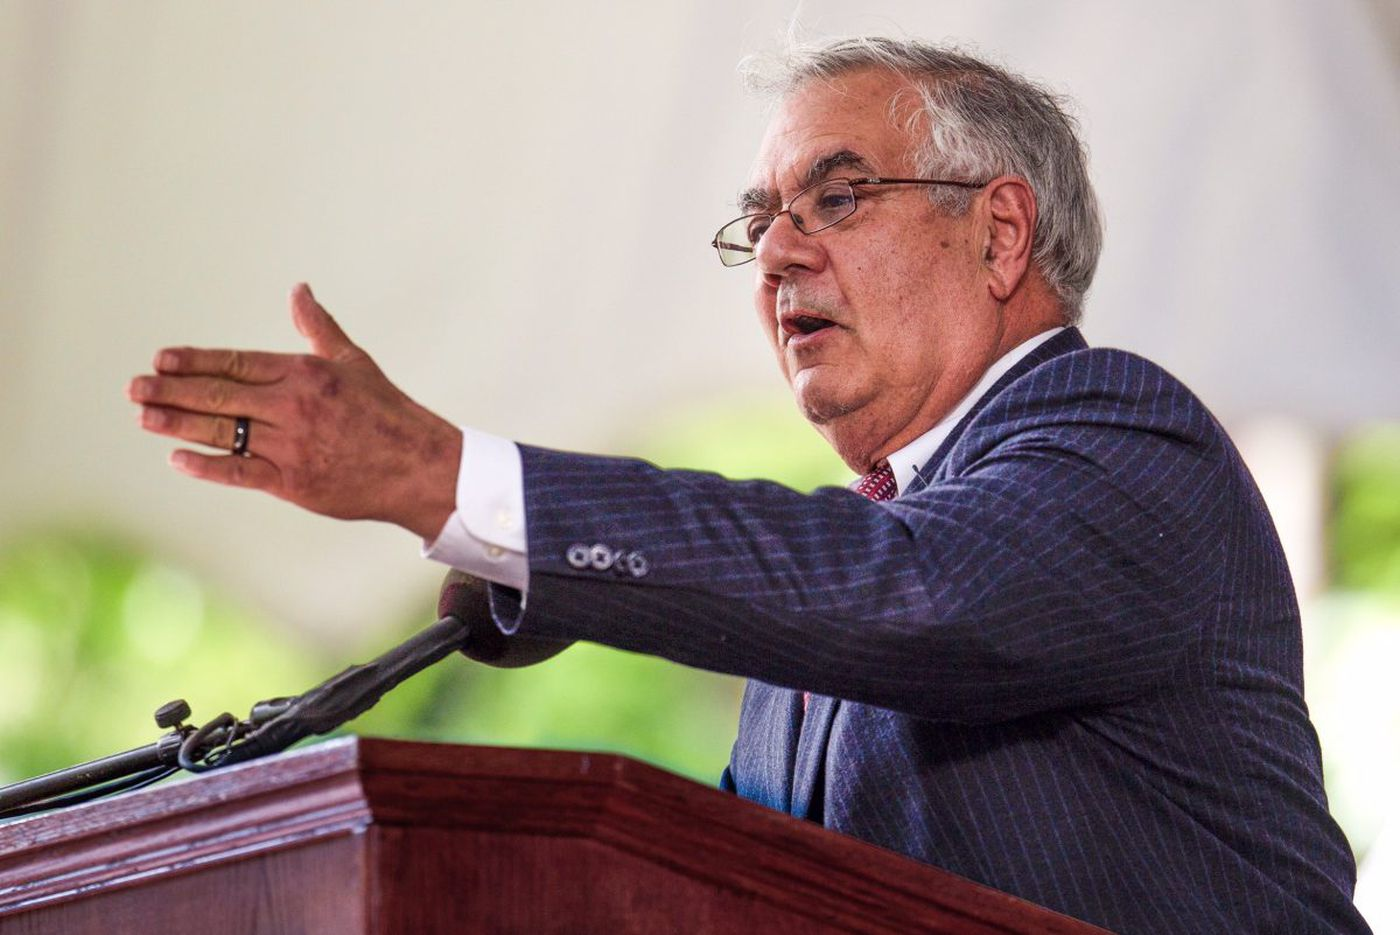 Move over Yo-Yo Ma: Barney Frank to front First Editions concert in October